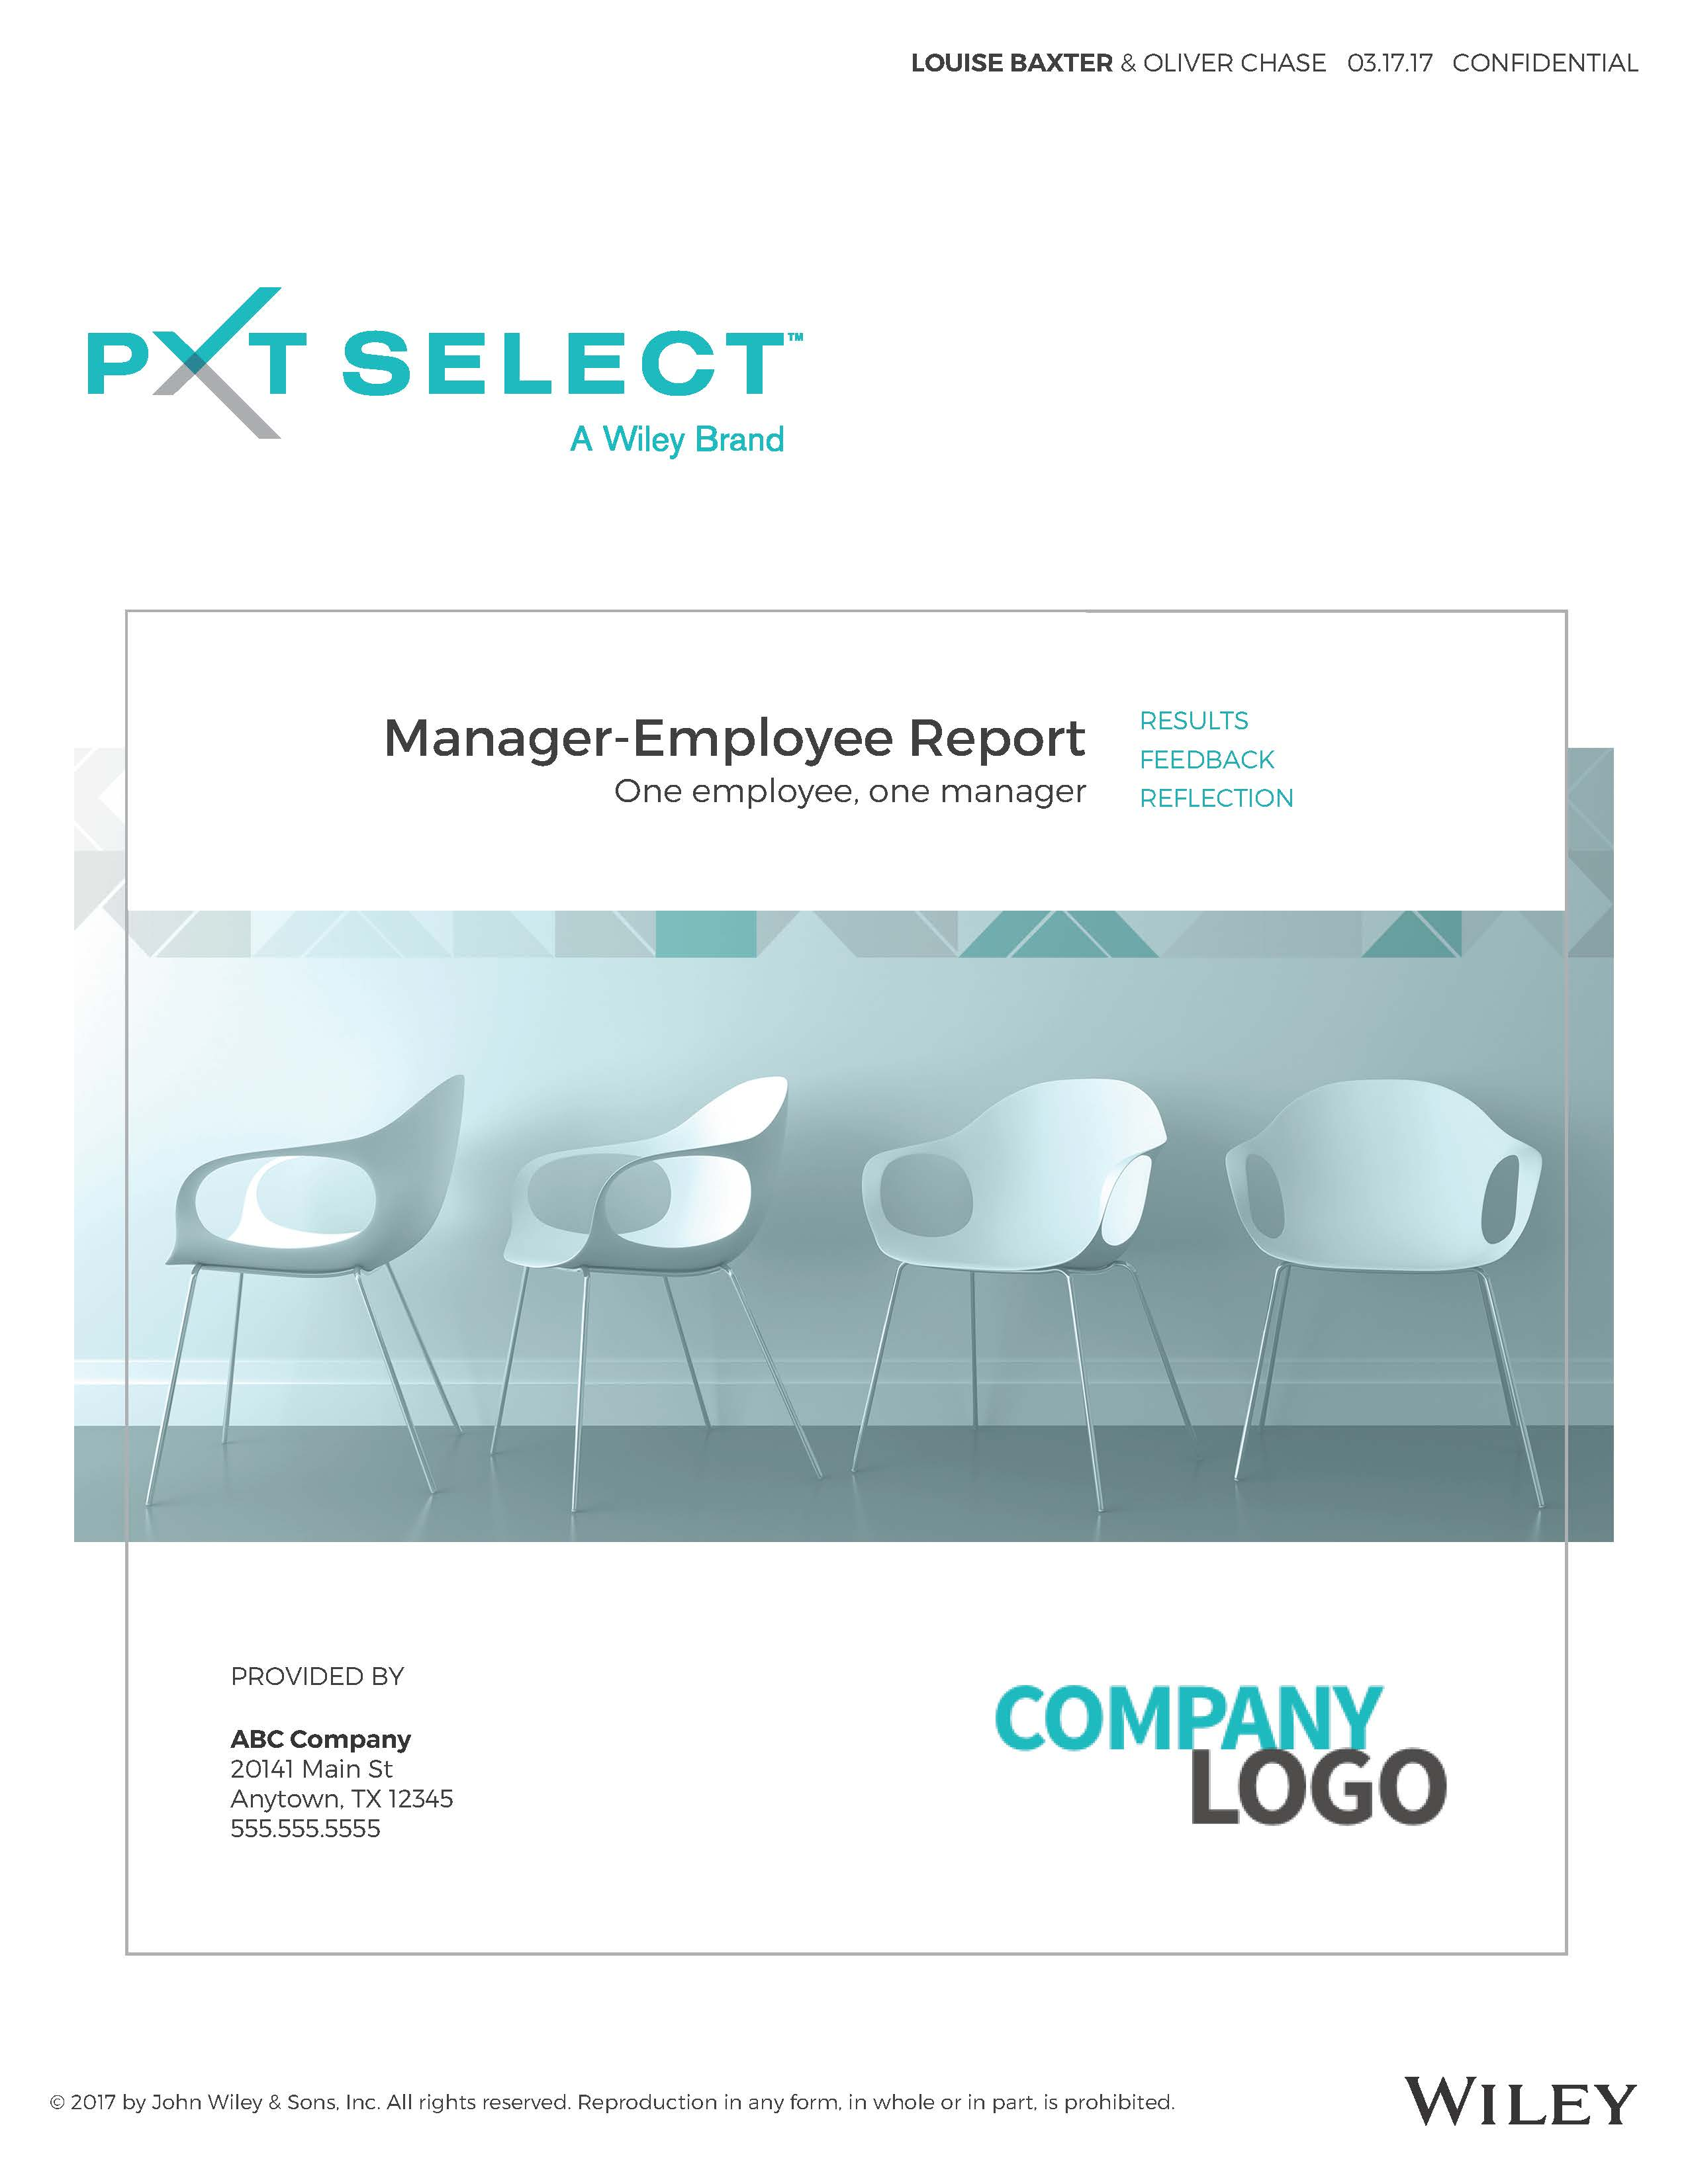 Manager-Employee Sample Report Cover